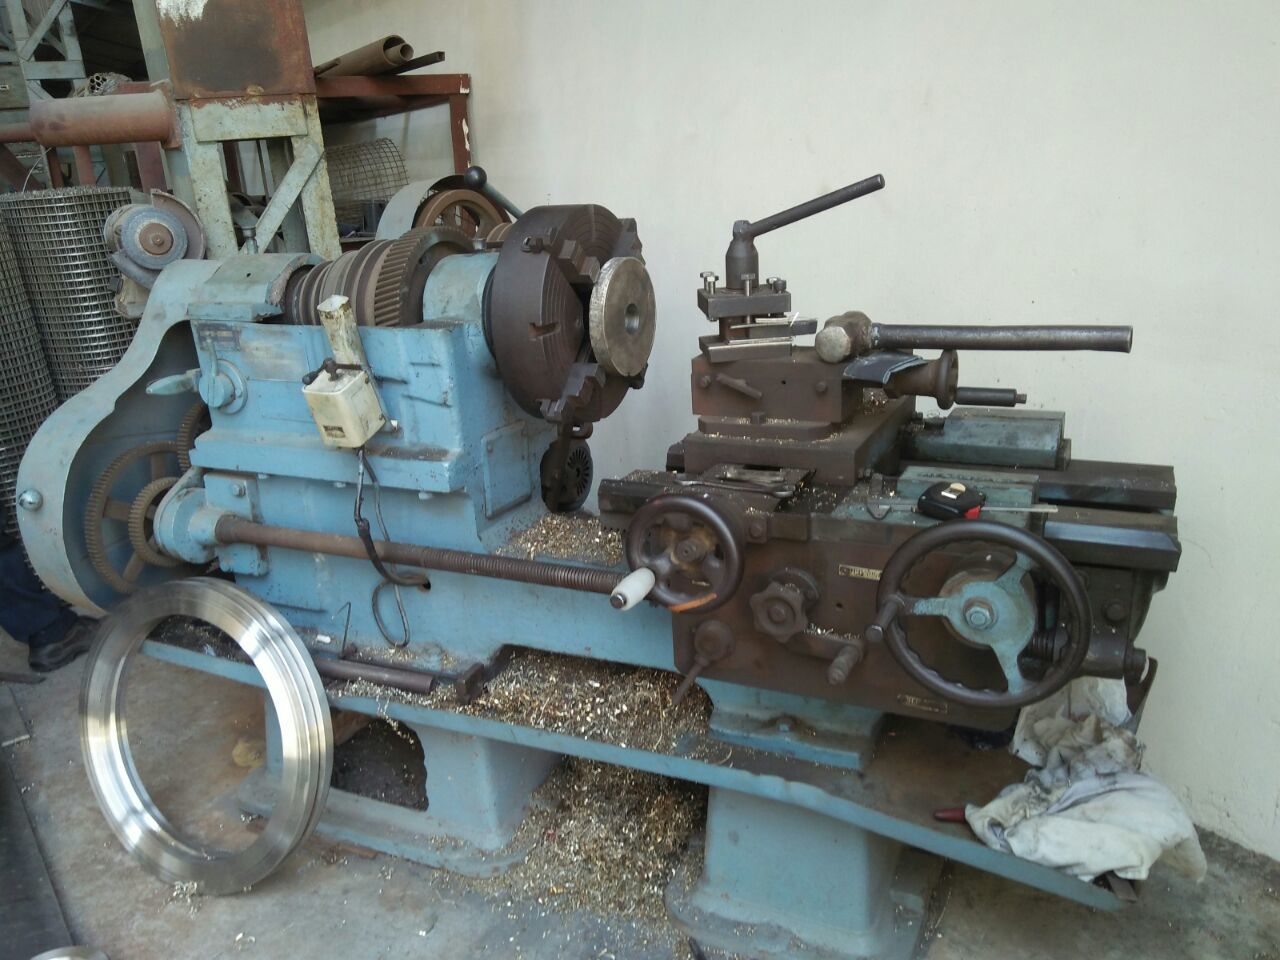 Lathe reactor machine